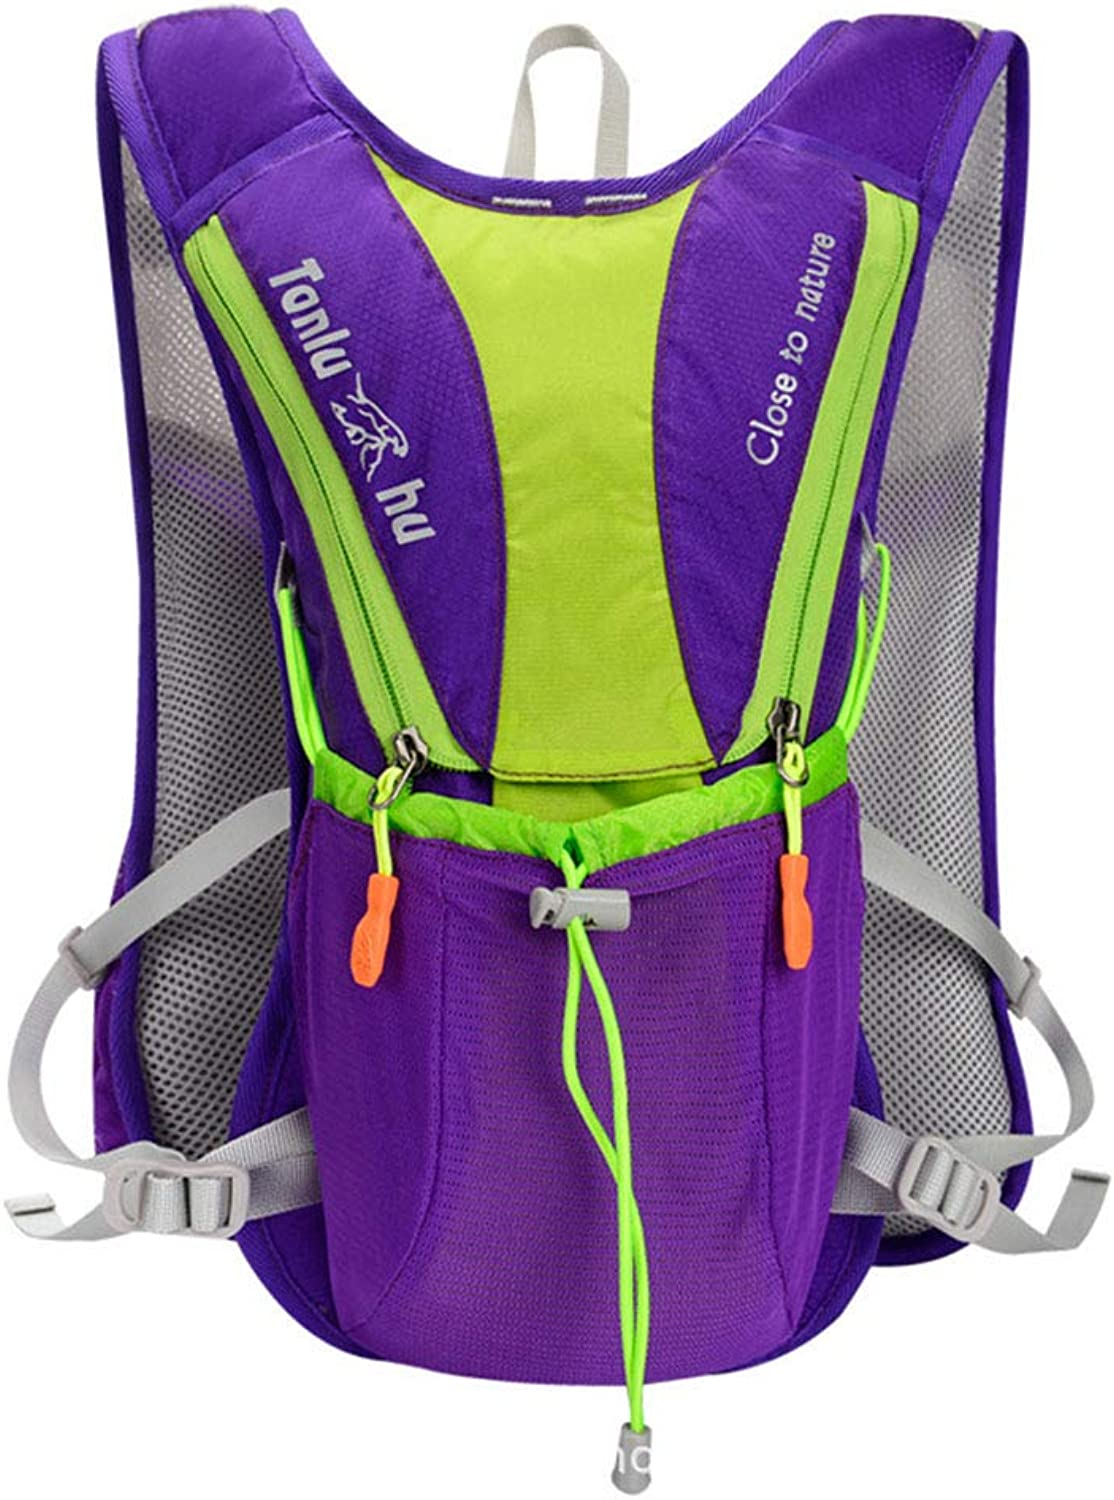 Cycling Backpack Biking Riding Daypack Bike Rucksack Breathable Lightweight for Outdoor Sports Travelling Mountaineering Water Pack Unisex,Purple,37  19  9cm